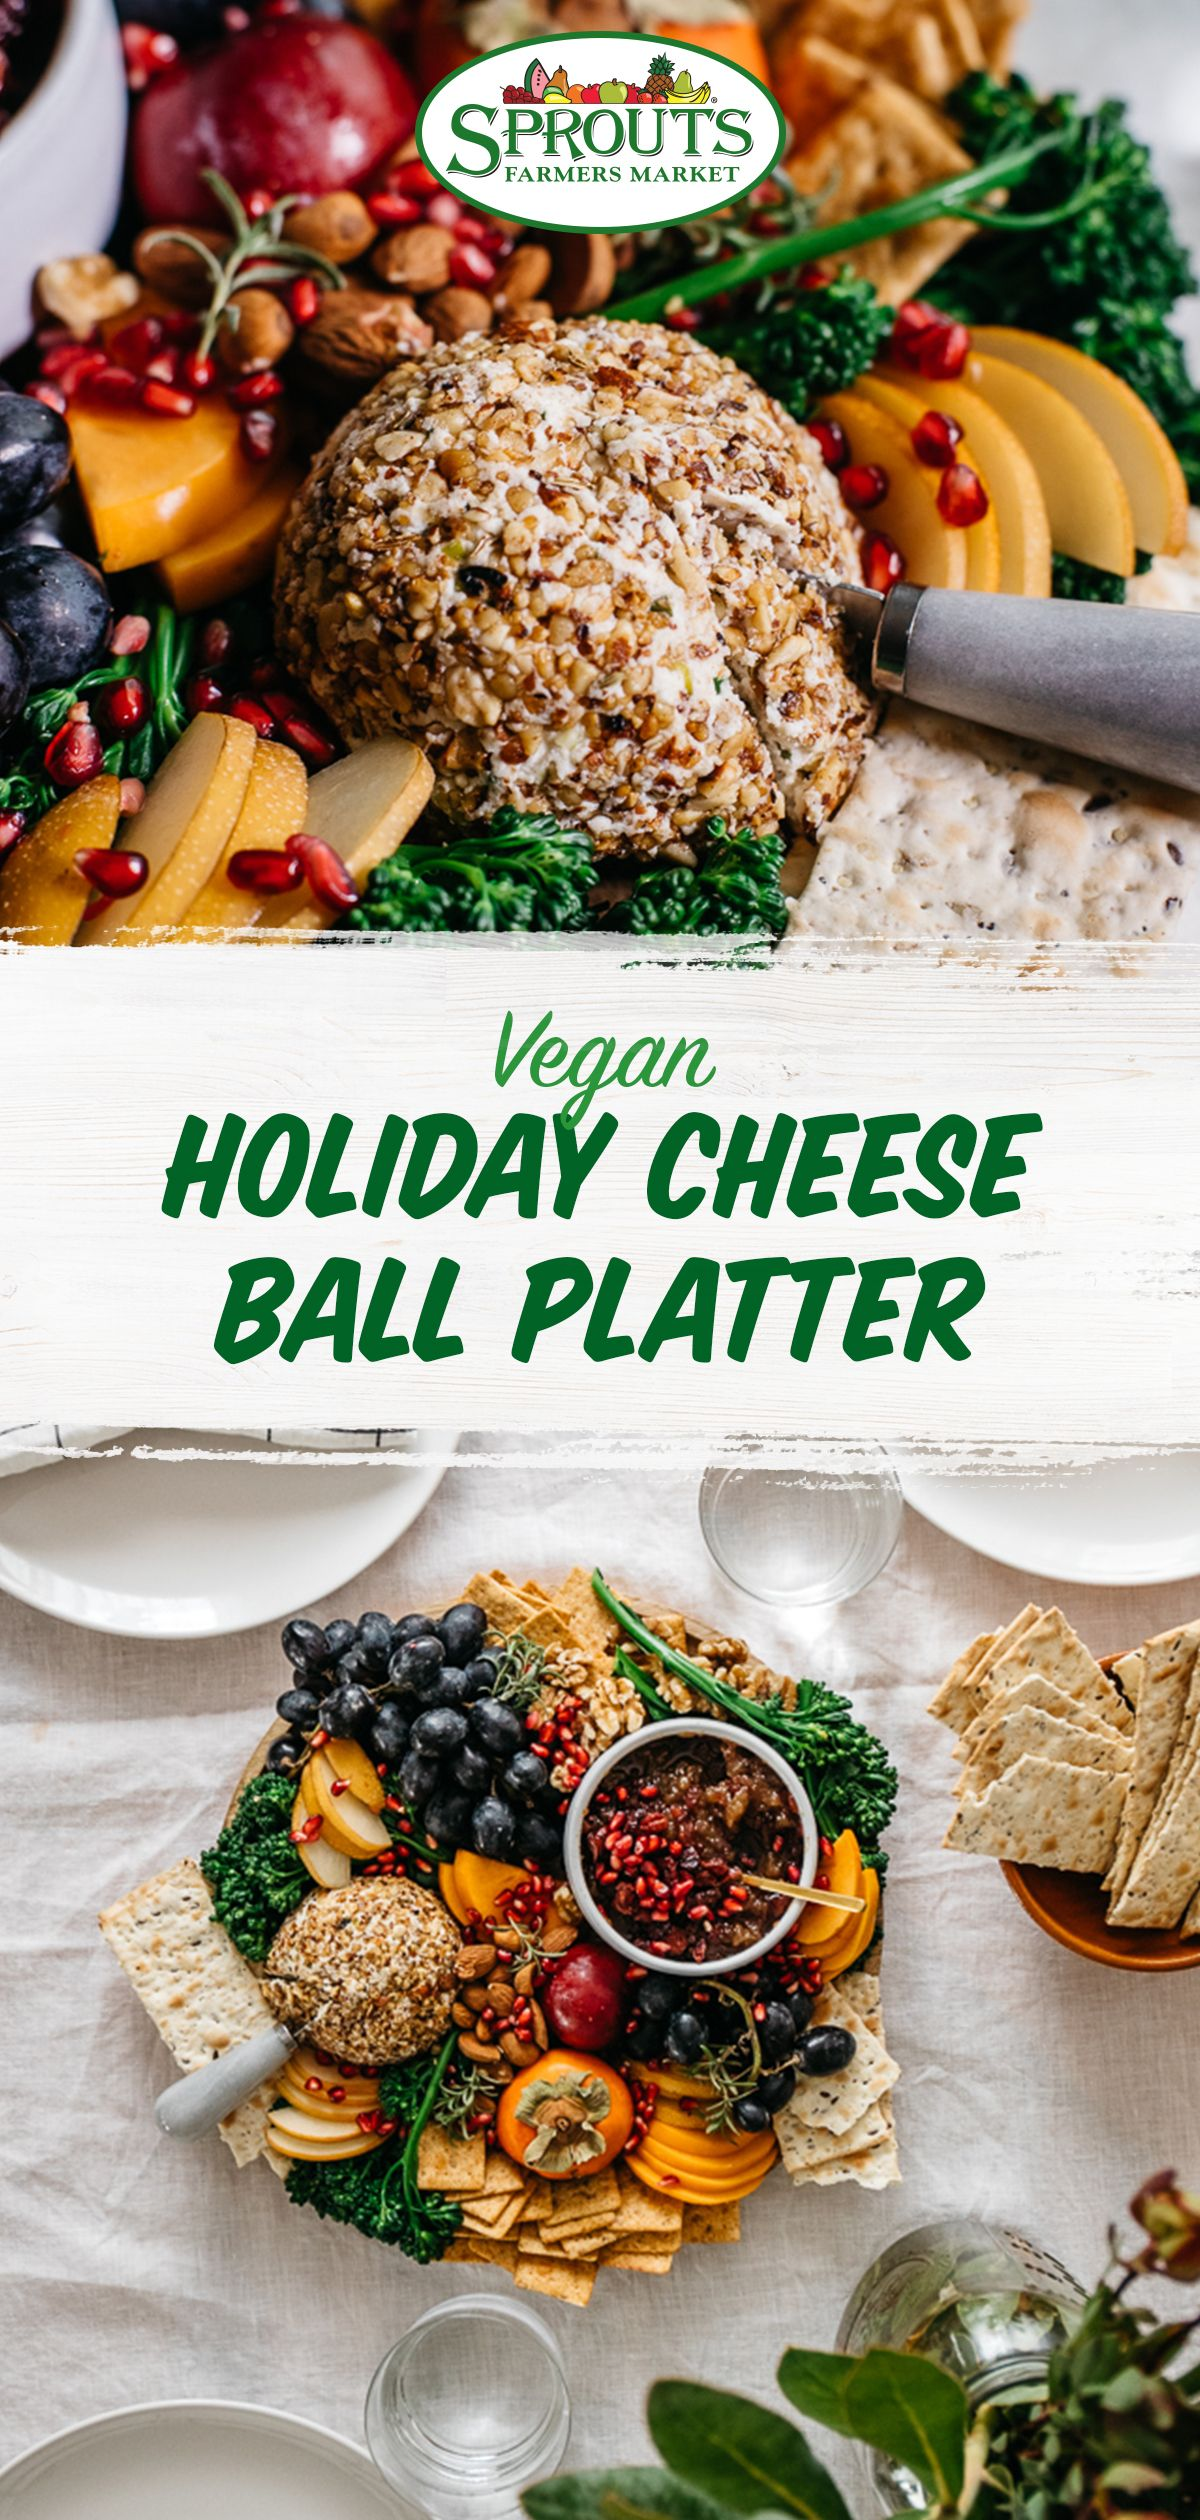 Vegan Holiday Cheese Ball Platter Shop Online Shopping List Digital Coupons Recipe Cheese Ball Holiday Cheese Vegan Holidays